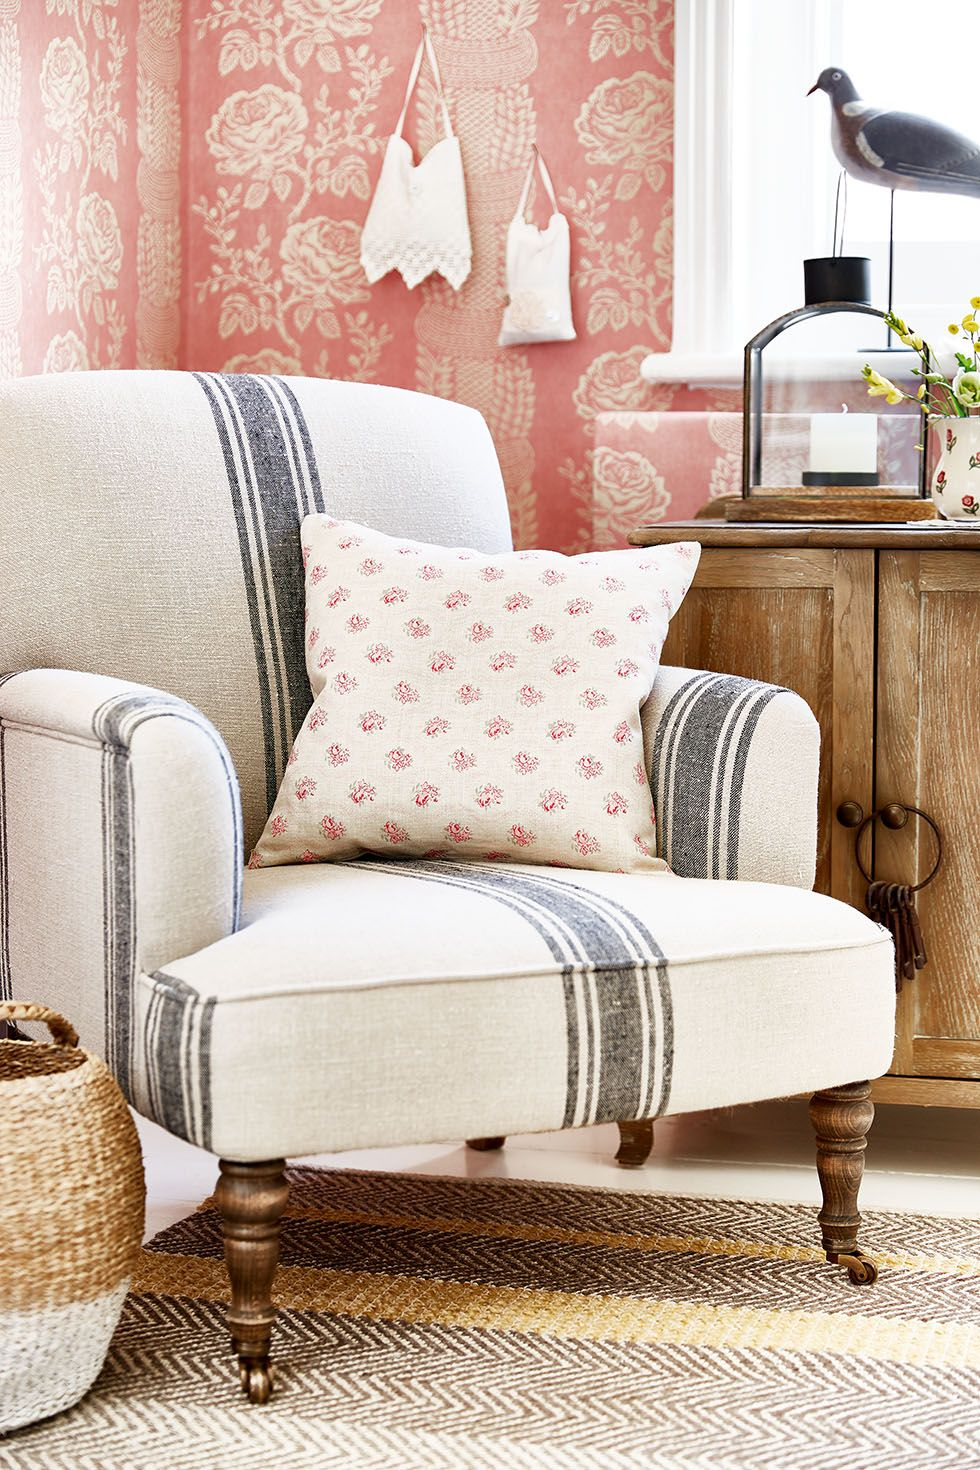 Fabric Living Room Chairs Best Way To Clean Rug Prairie Chic Ticking Stripe Chair Pinterest